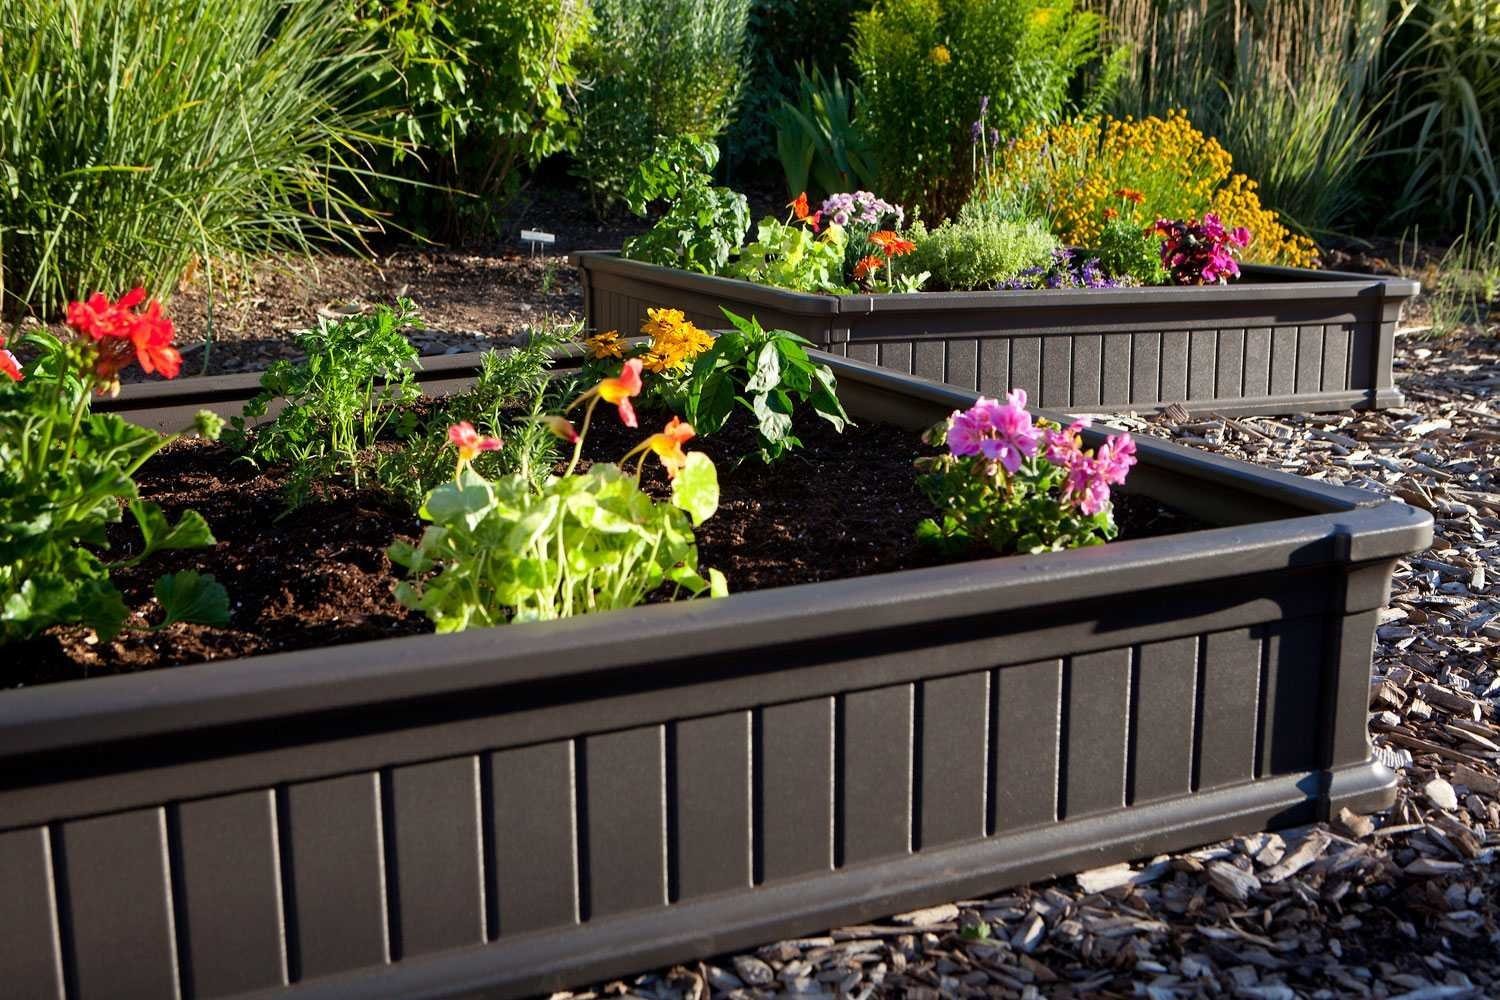 10 inspiring diy raised garden beds-ideas,plans and designs | the